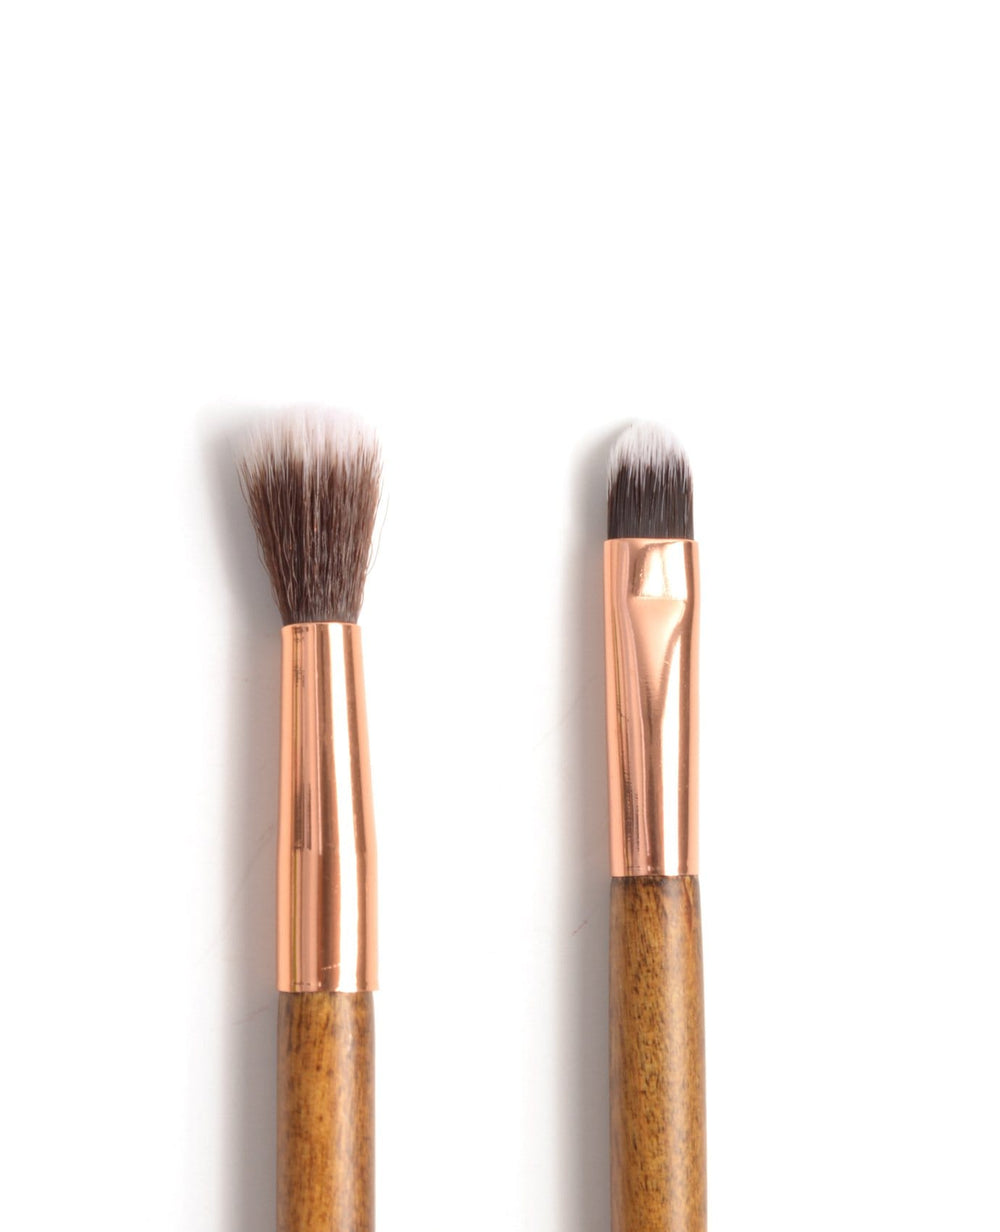 Amor Us Duo Eyeshadow Blending Brush - #119D